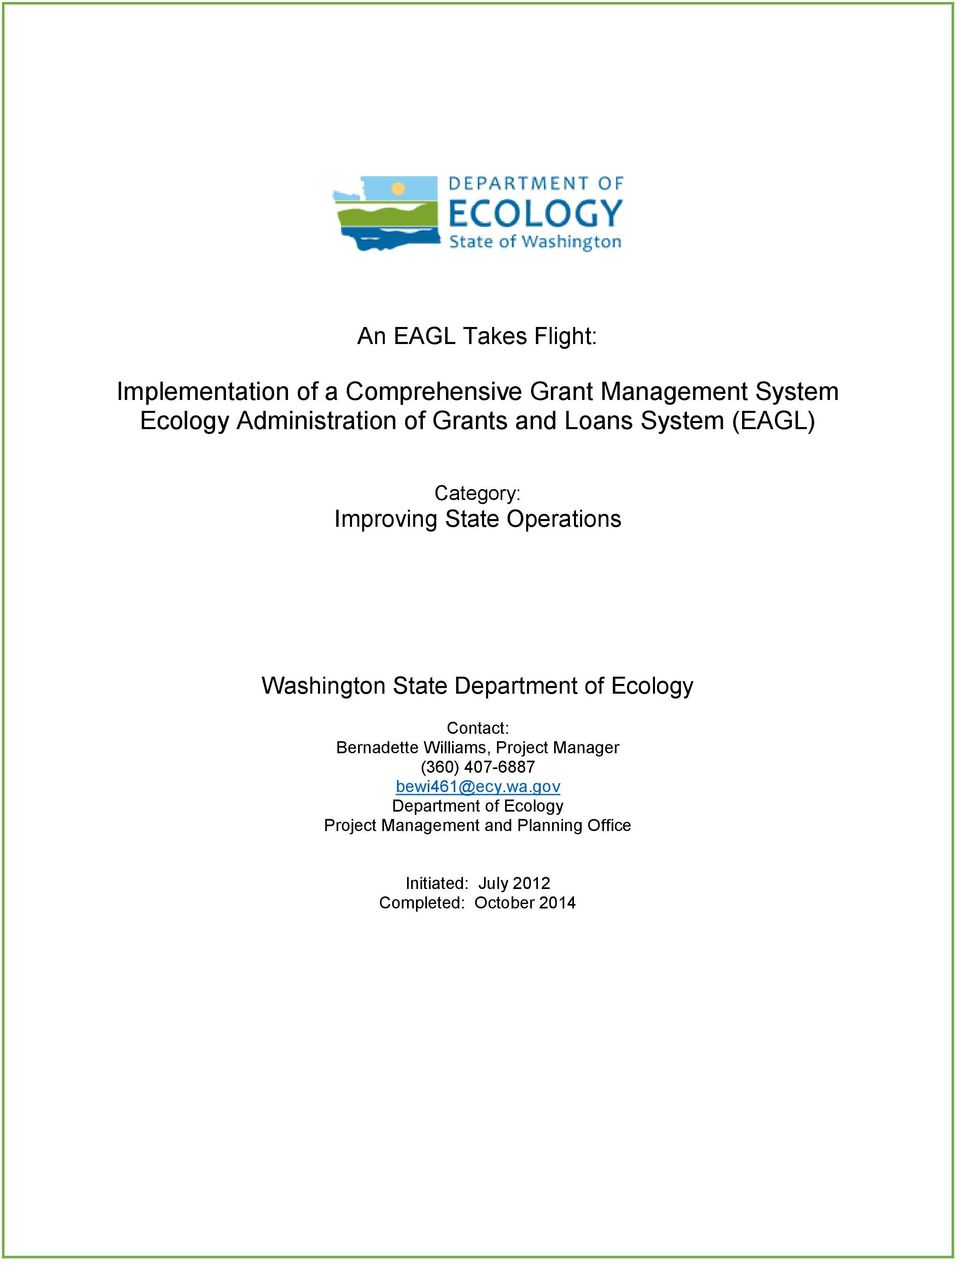 State Department of Ecology Contact: Bernadette Williams, Project Manager (360) 407-6887